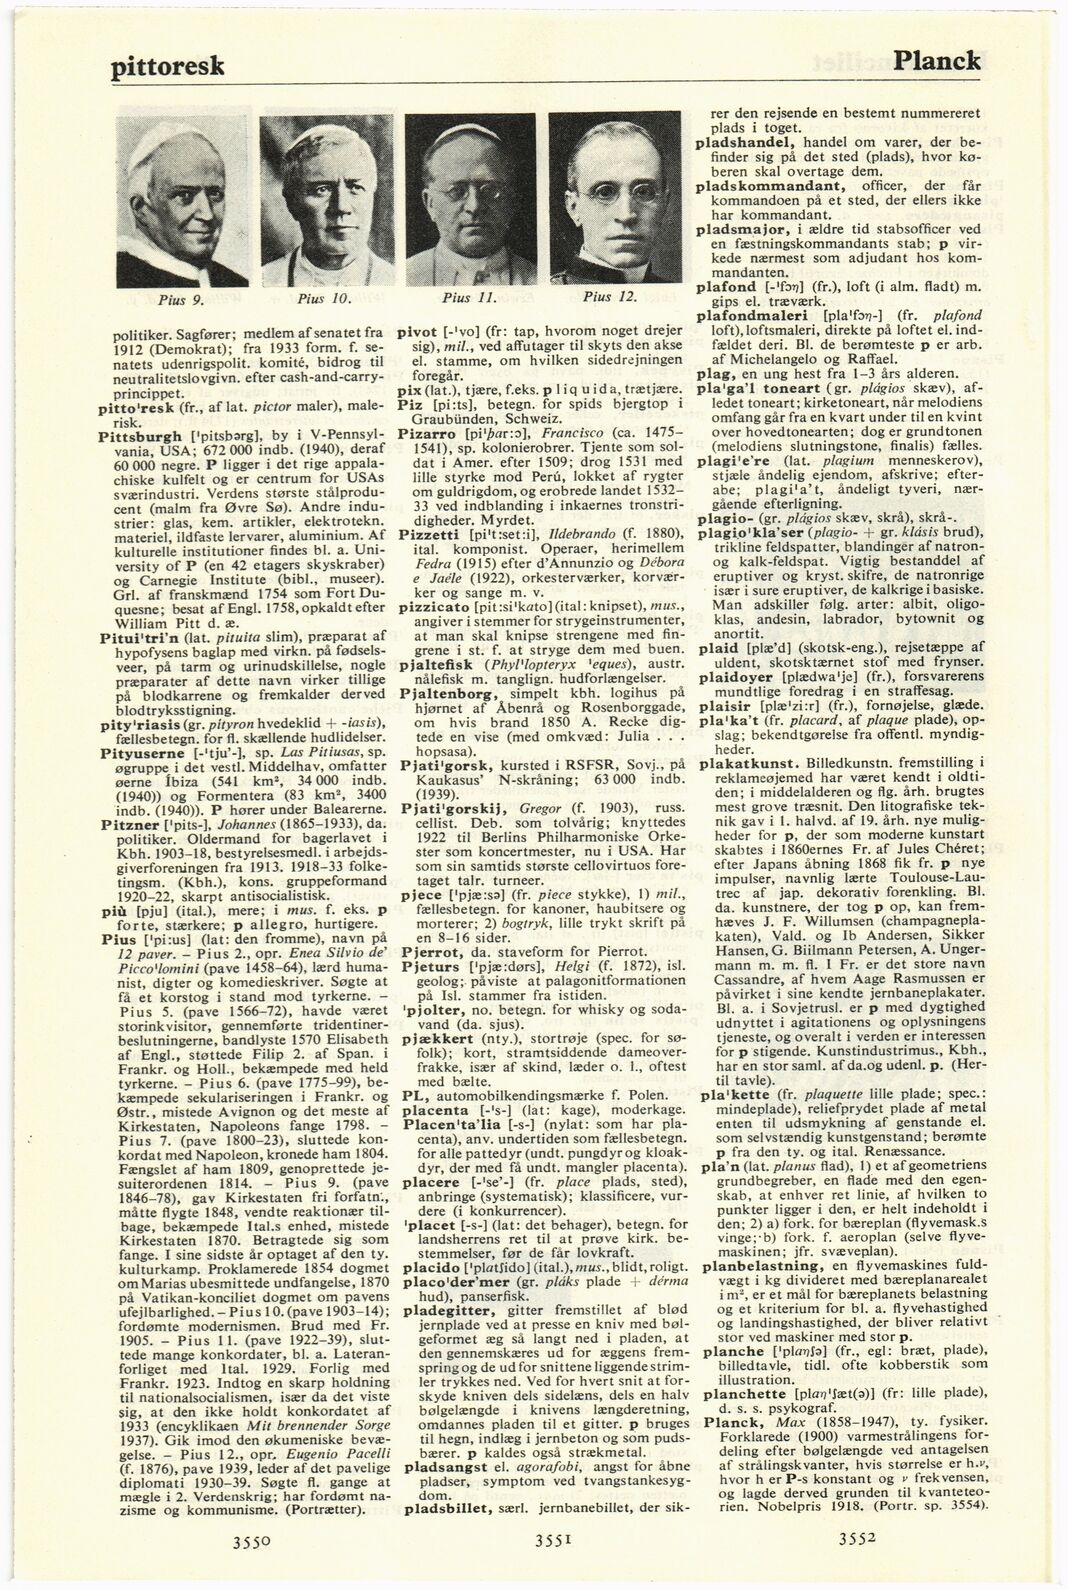 scanned image